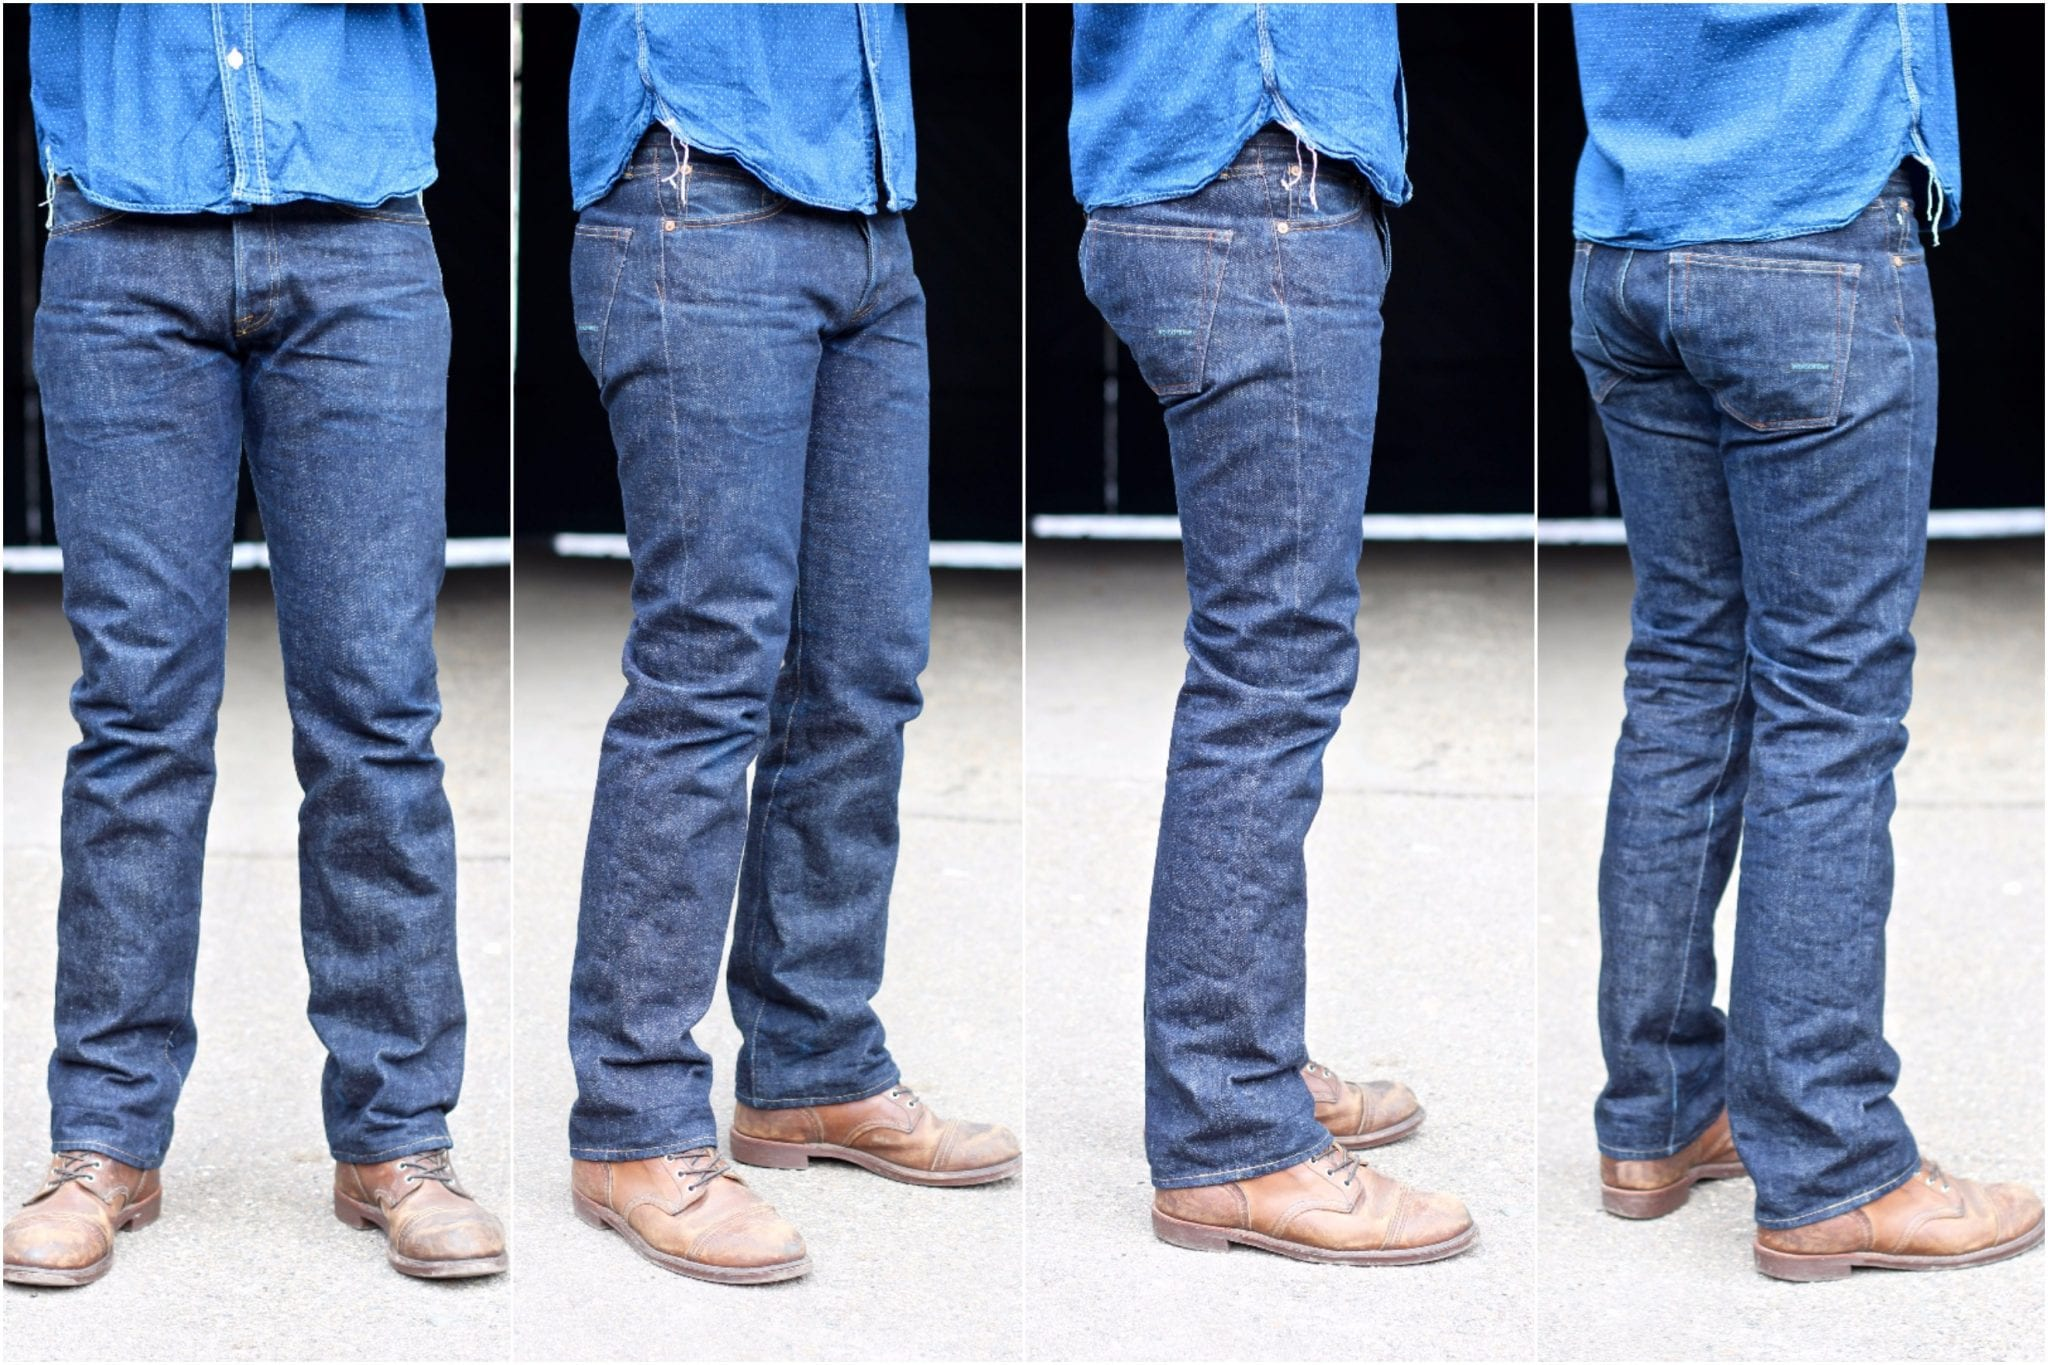 Regular fit, Indigofera, Clint jeans, raw denim, Japanese denim, denim fades